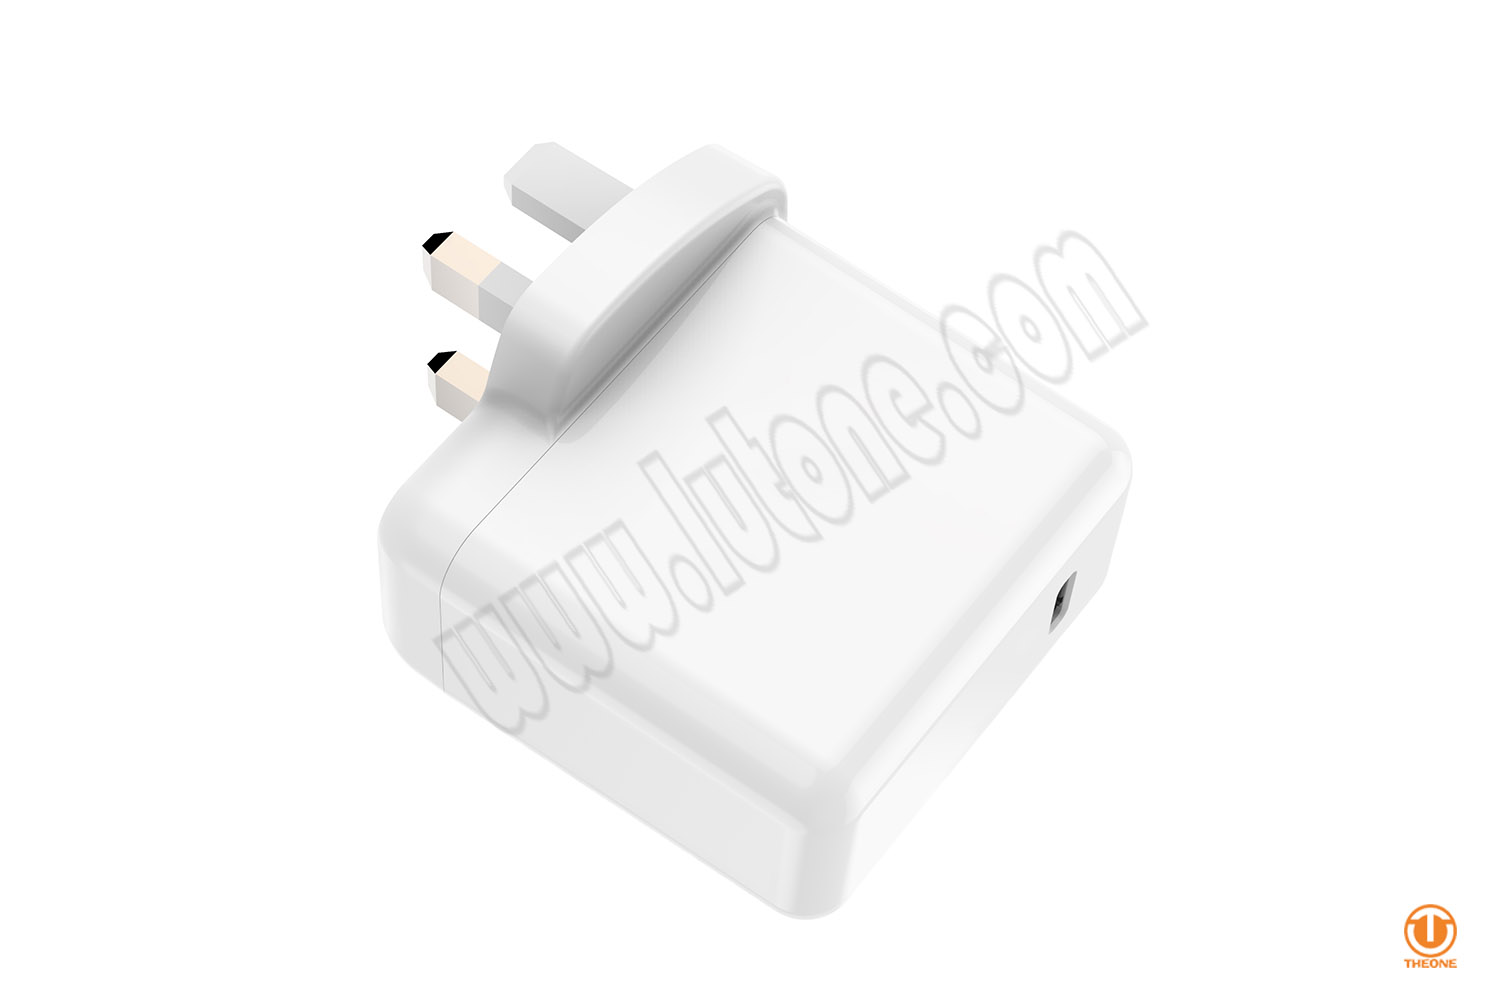 30W USB-C PD Charger